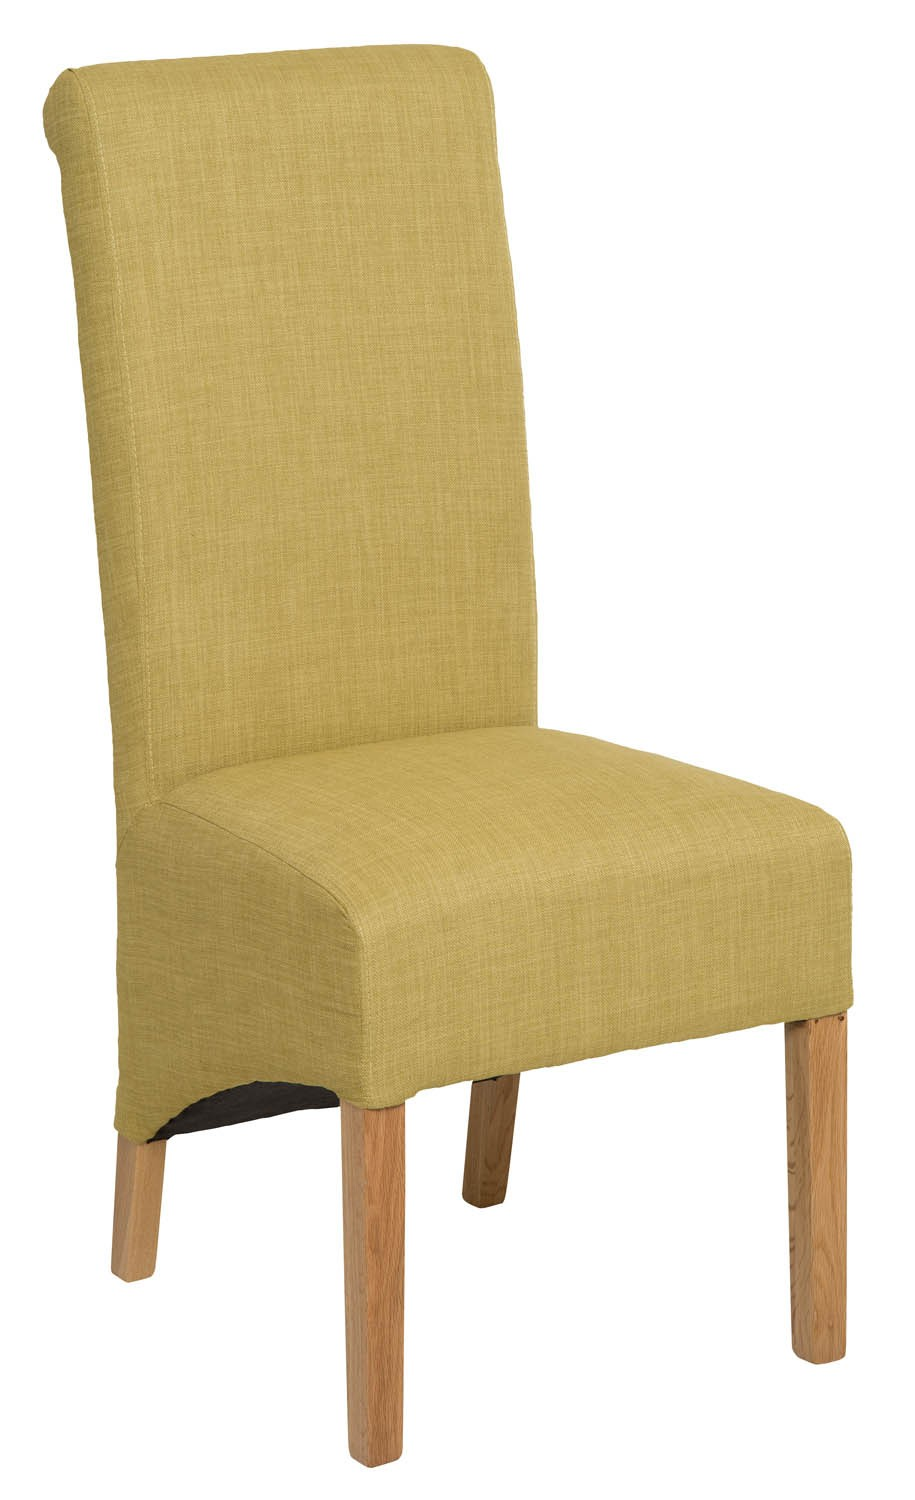 Roll Top Lime Fabric Dining Chair 106cm Hallowood